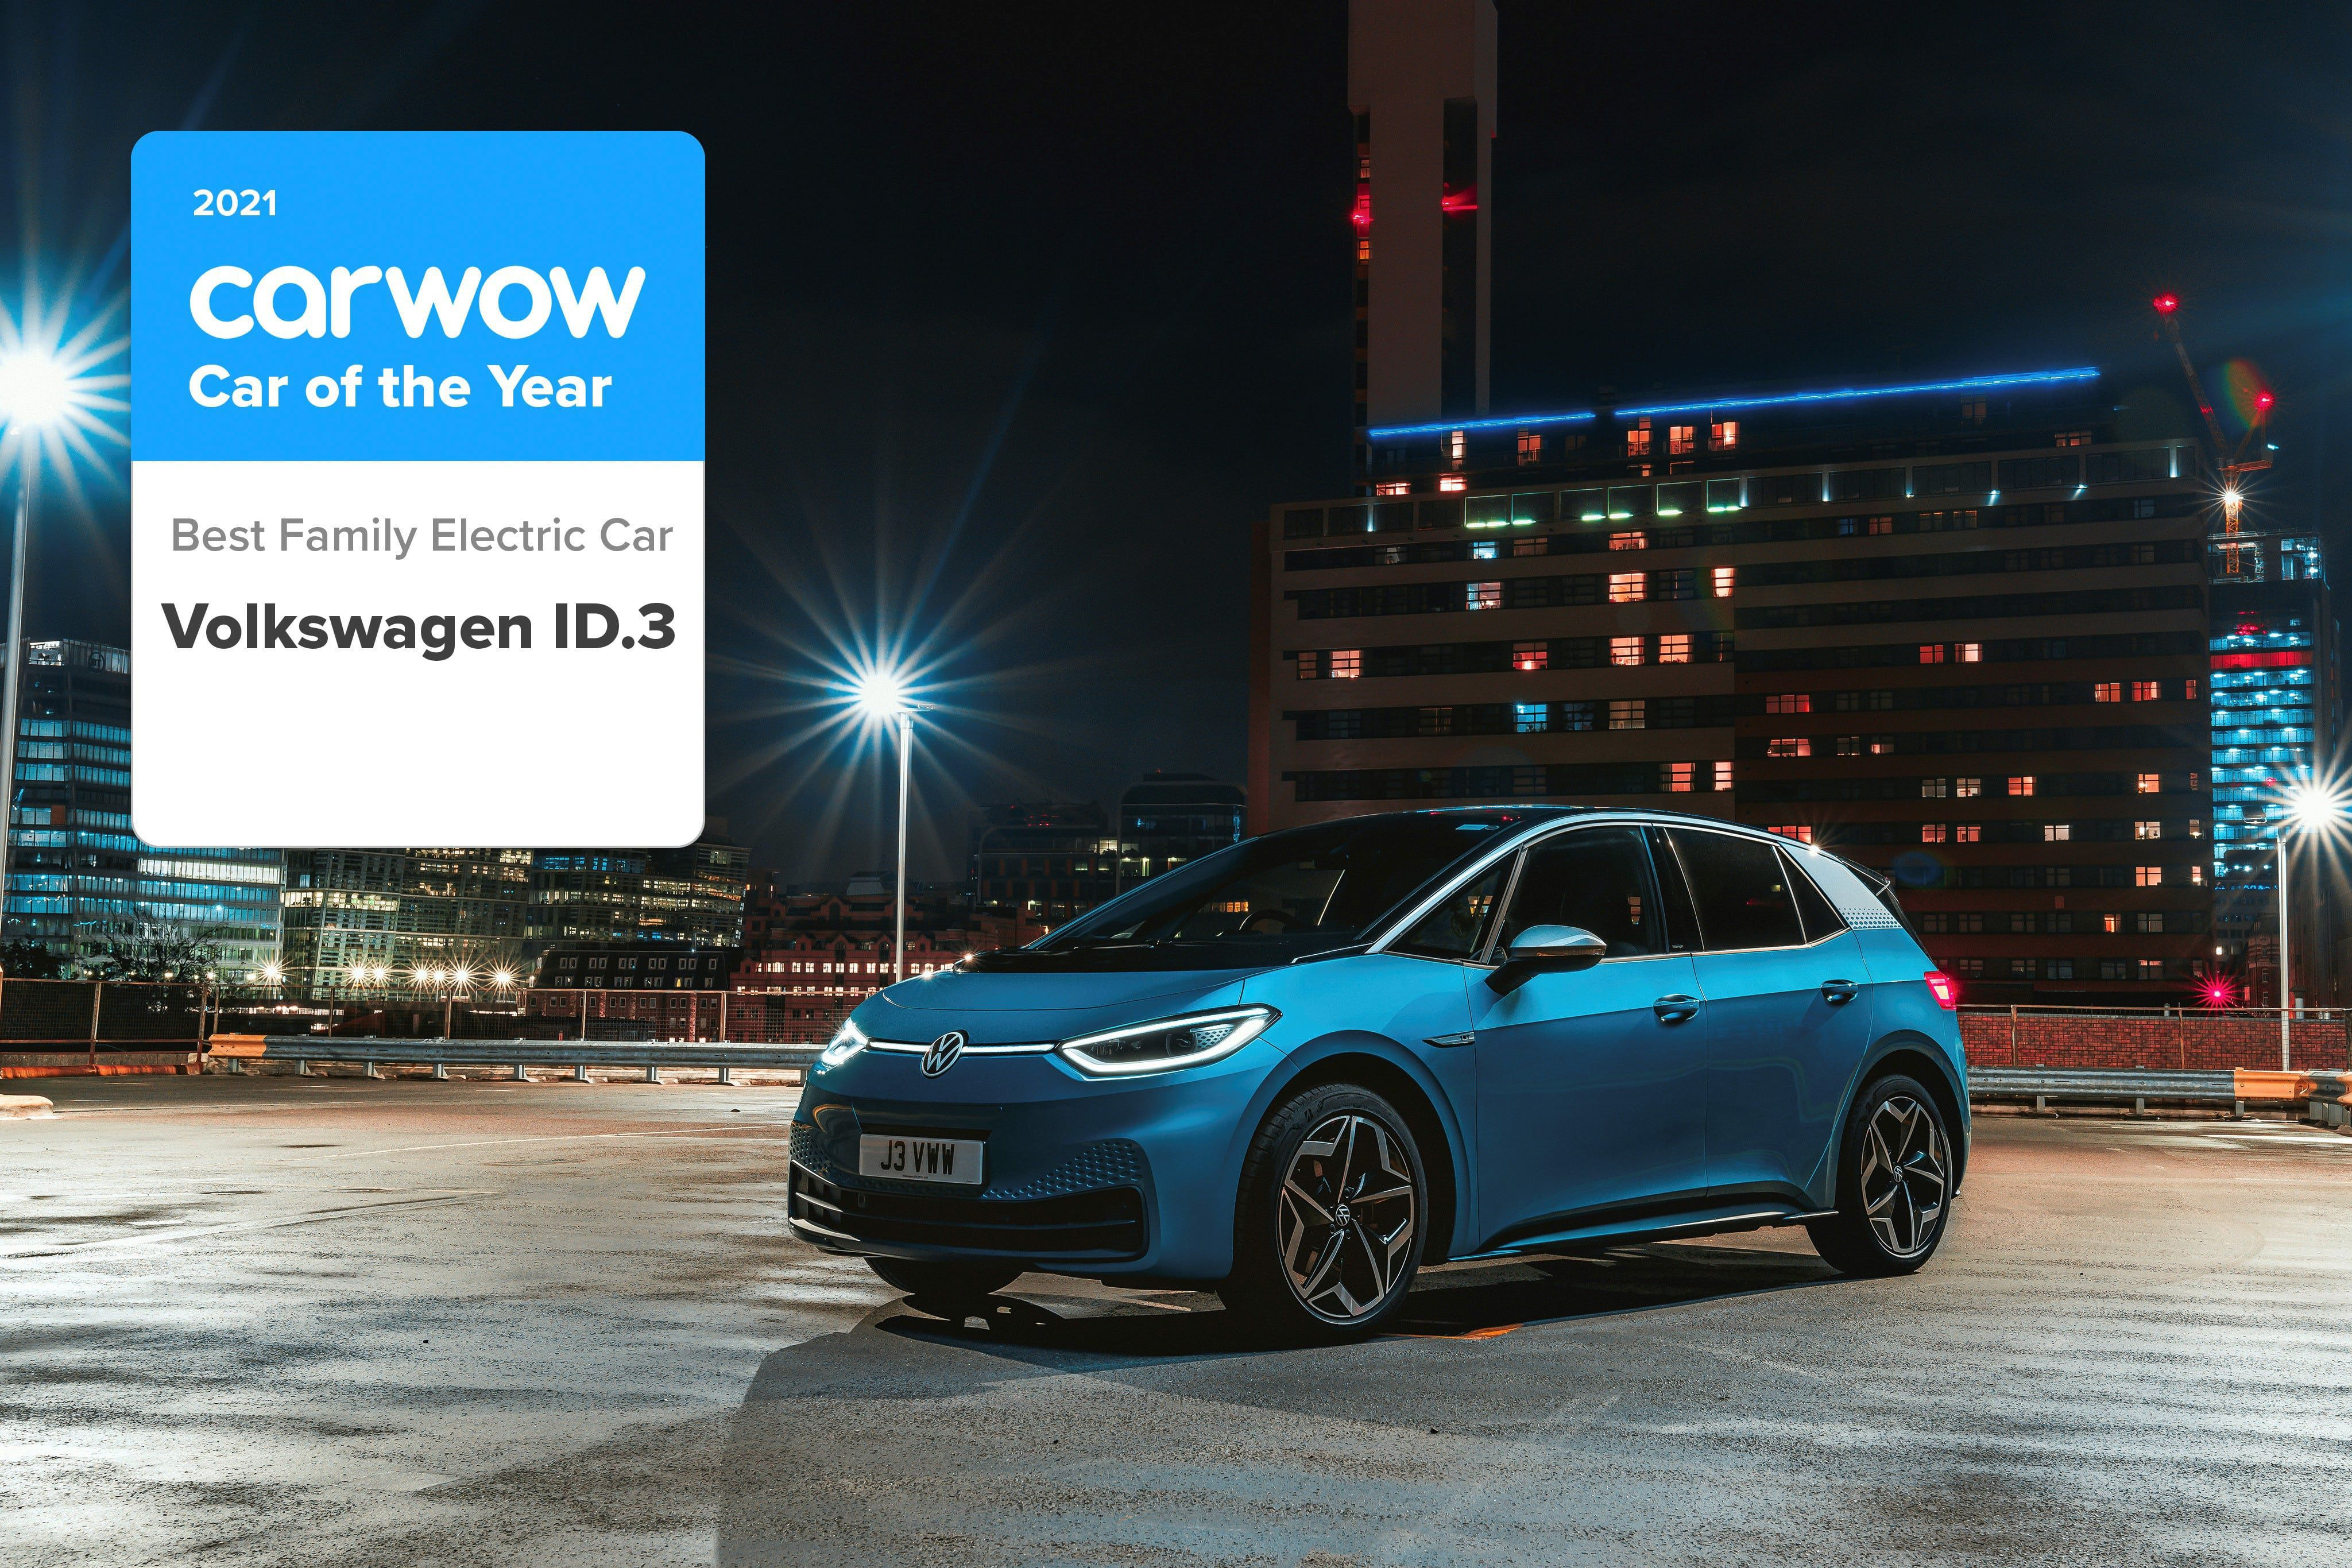 car wow car of the year award best family electric car